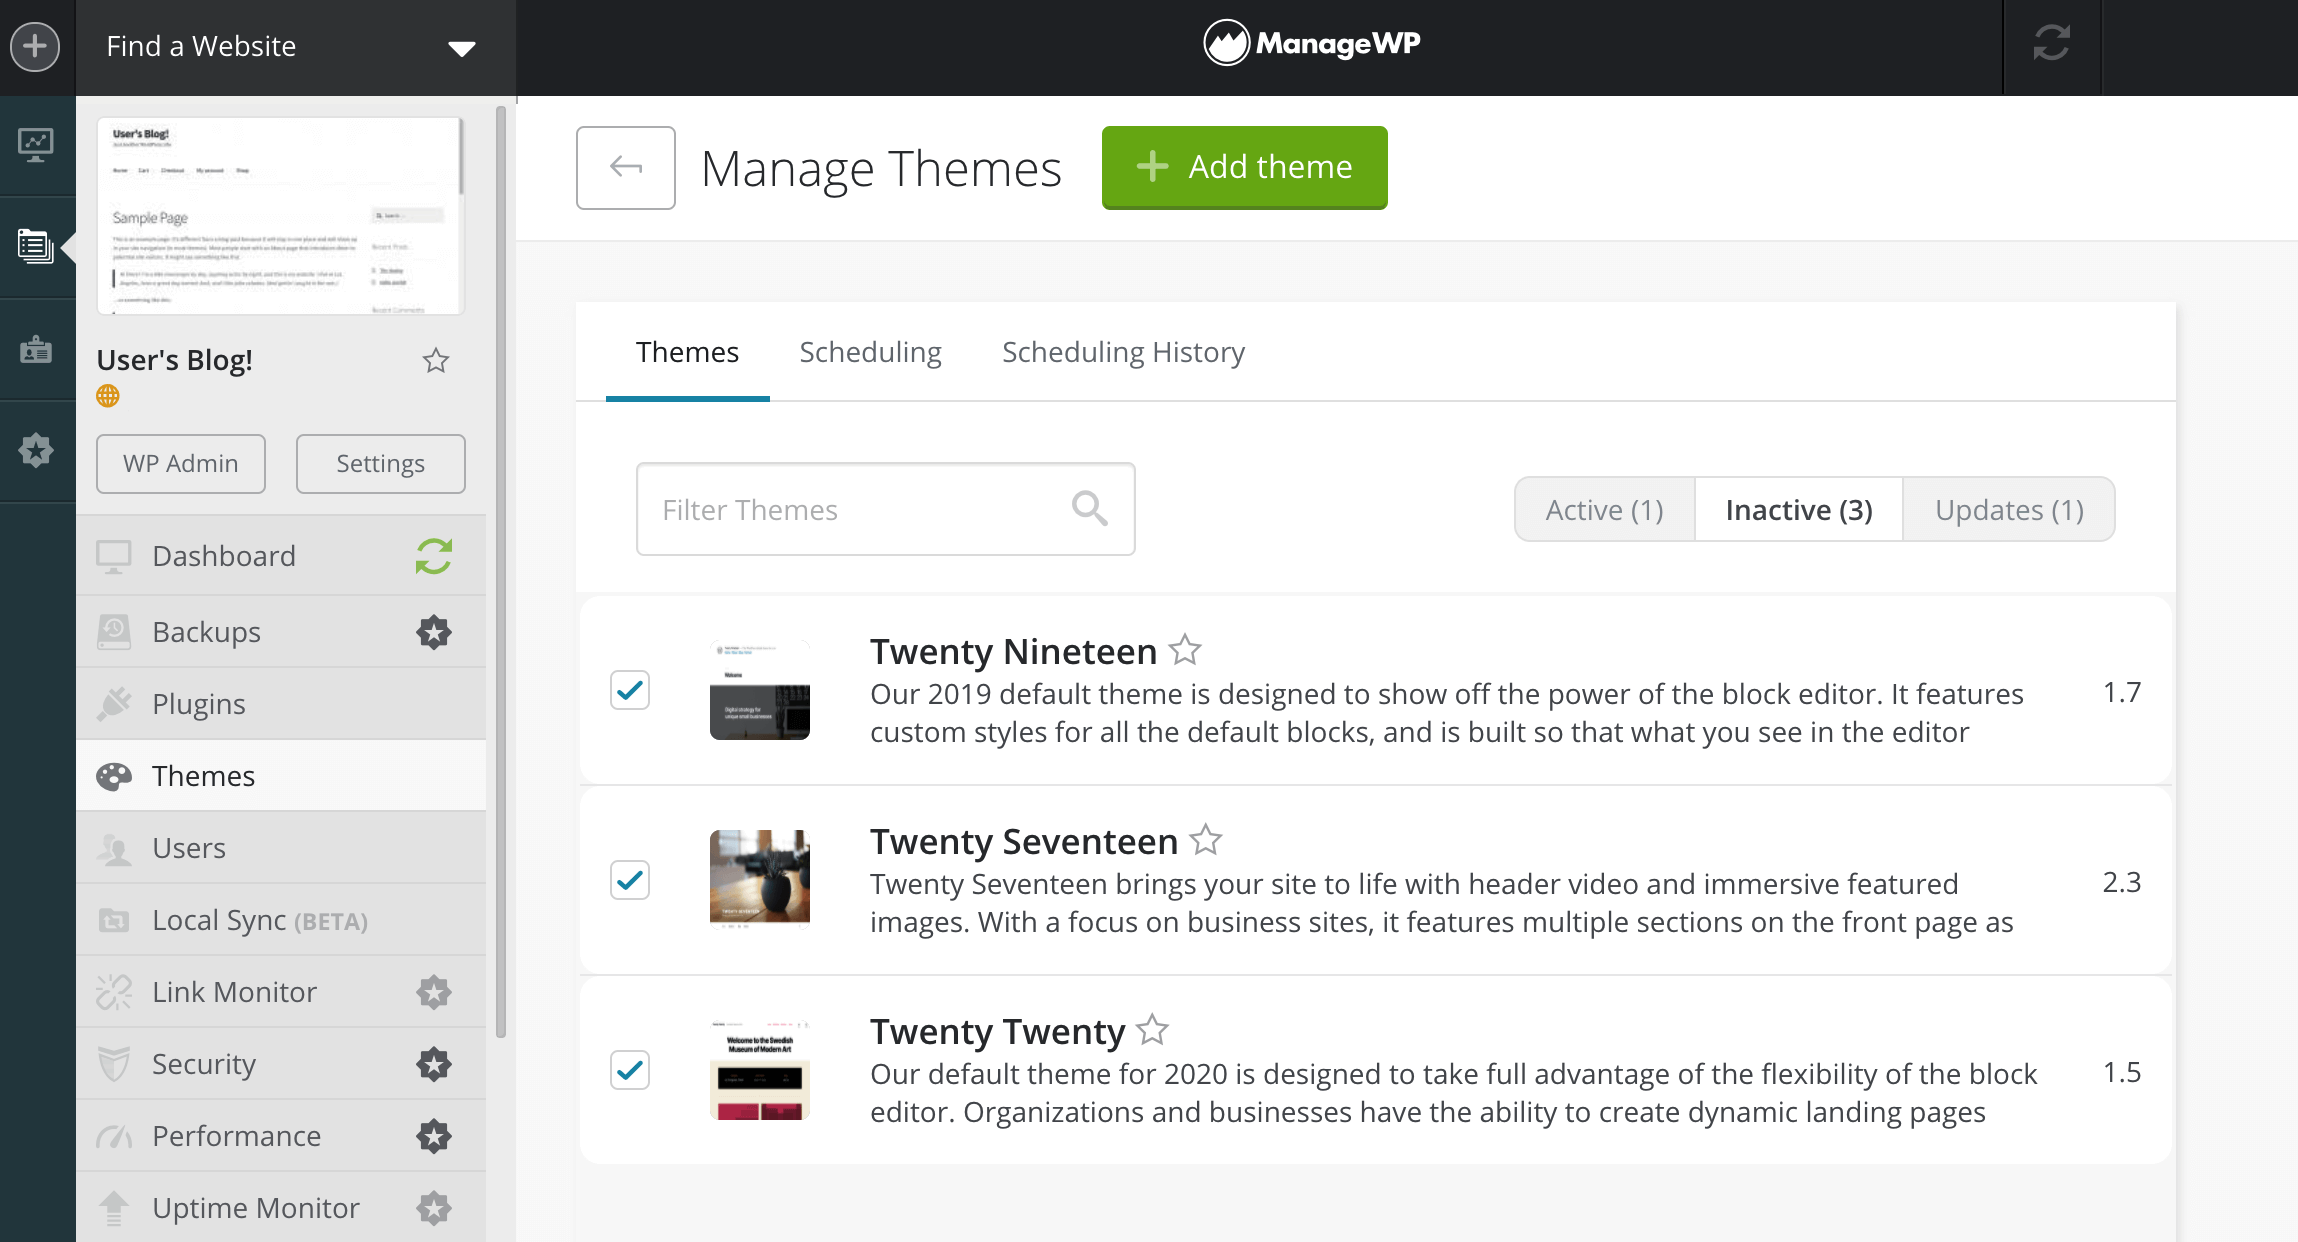 The Manage Themes section of the ManageWP dashboard.